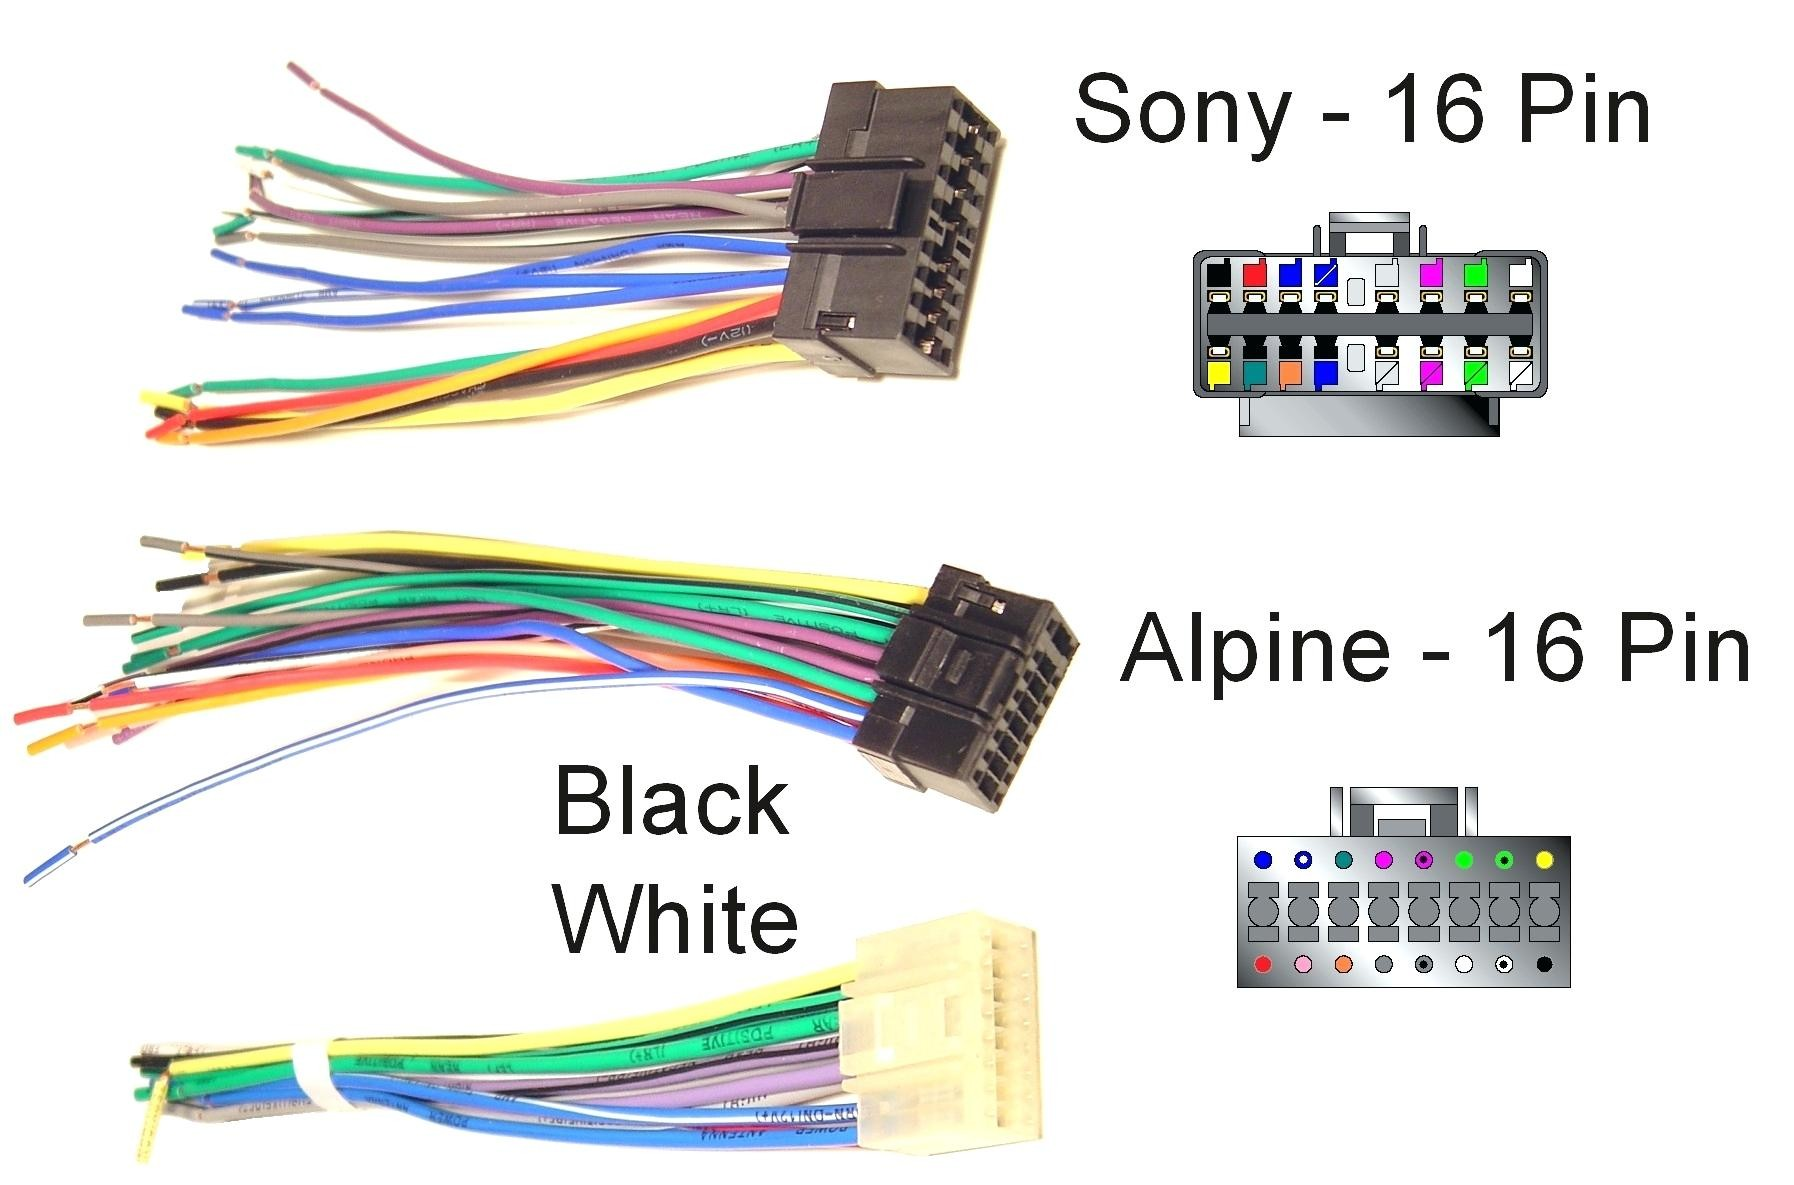 alpine car stereo wiring diagram central heating timer for my